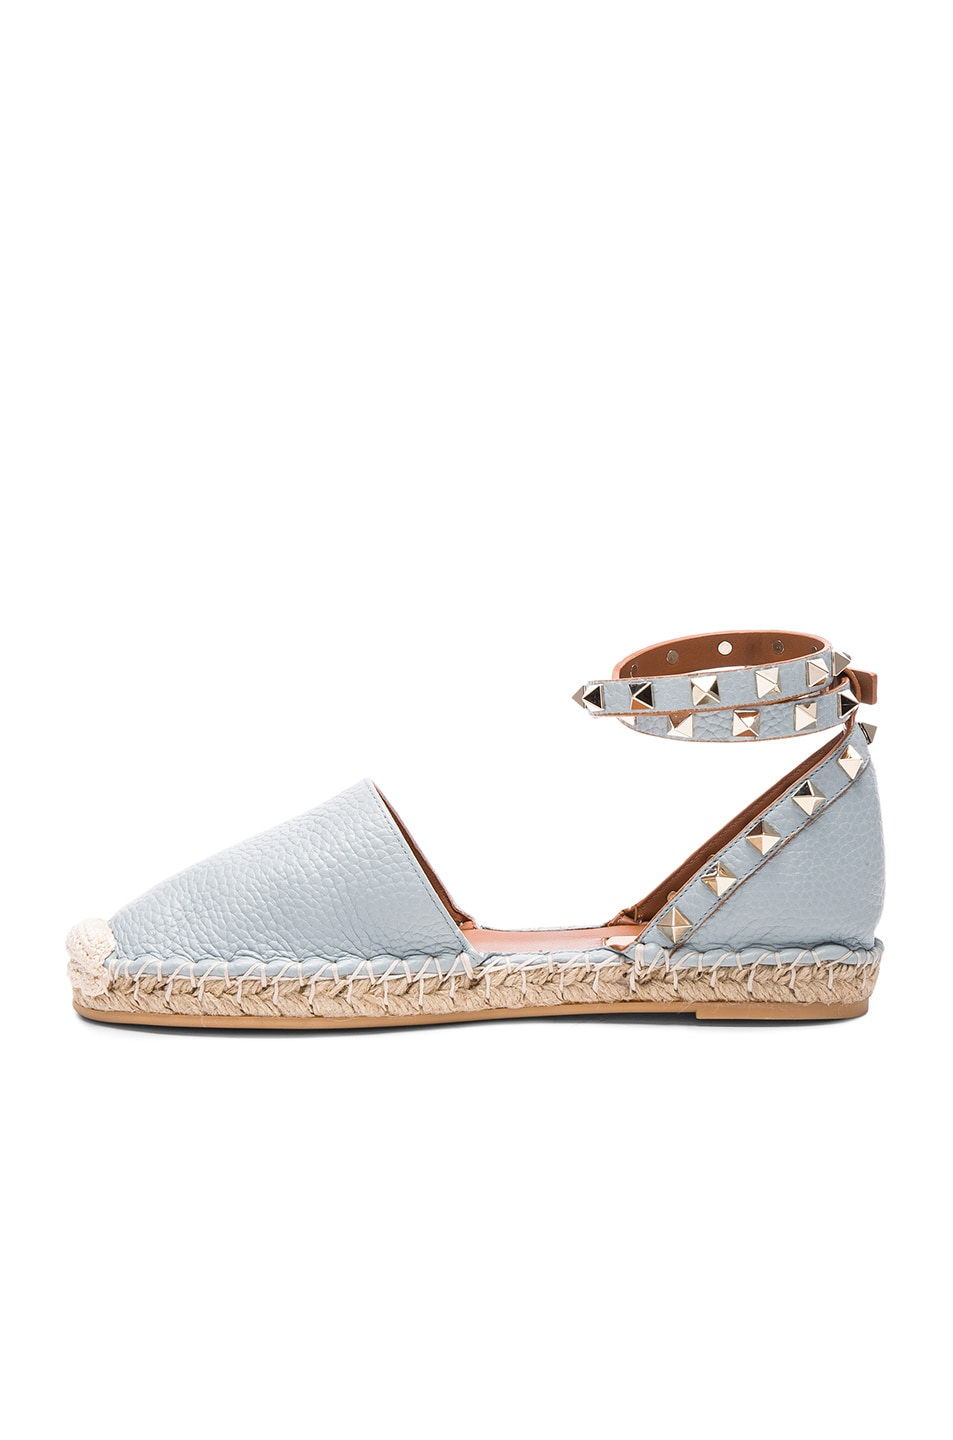 Image 5 of Valentino Rockstud Double Flat Leather Espadrilles in Sky Sorbet